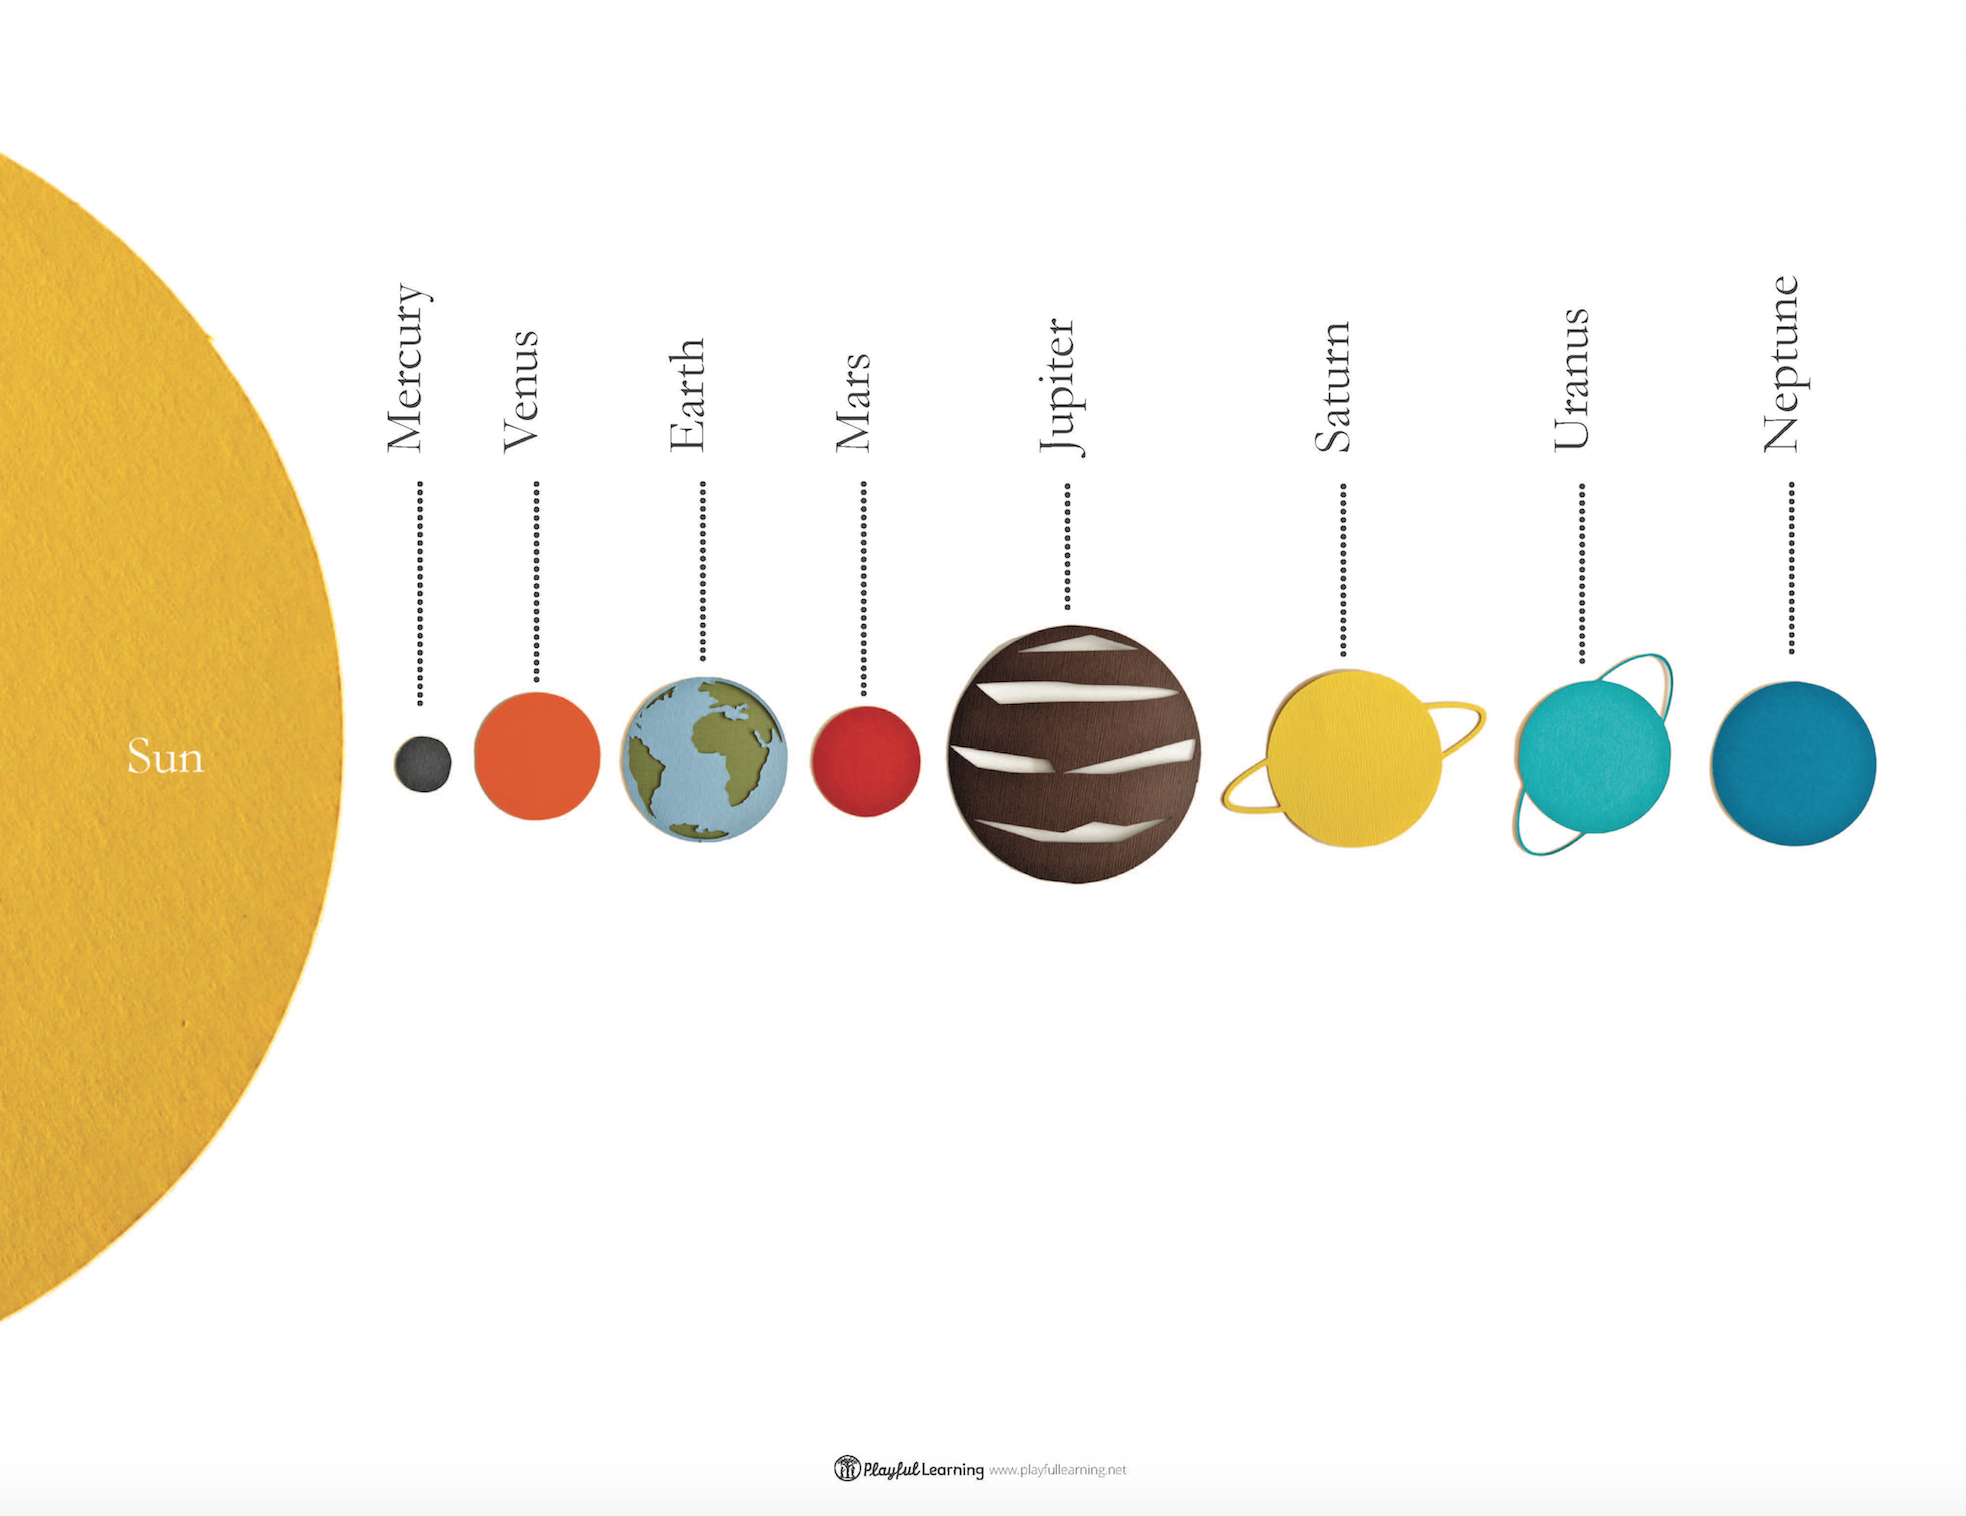 Solar System Png - Playful Learning: The Solar System